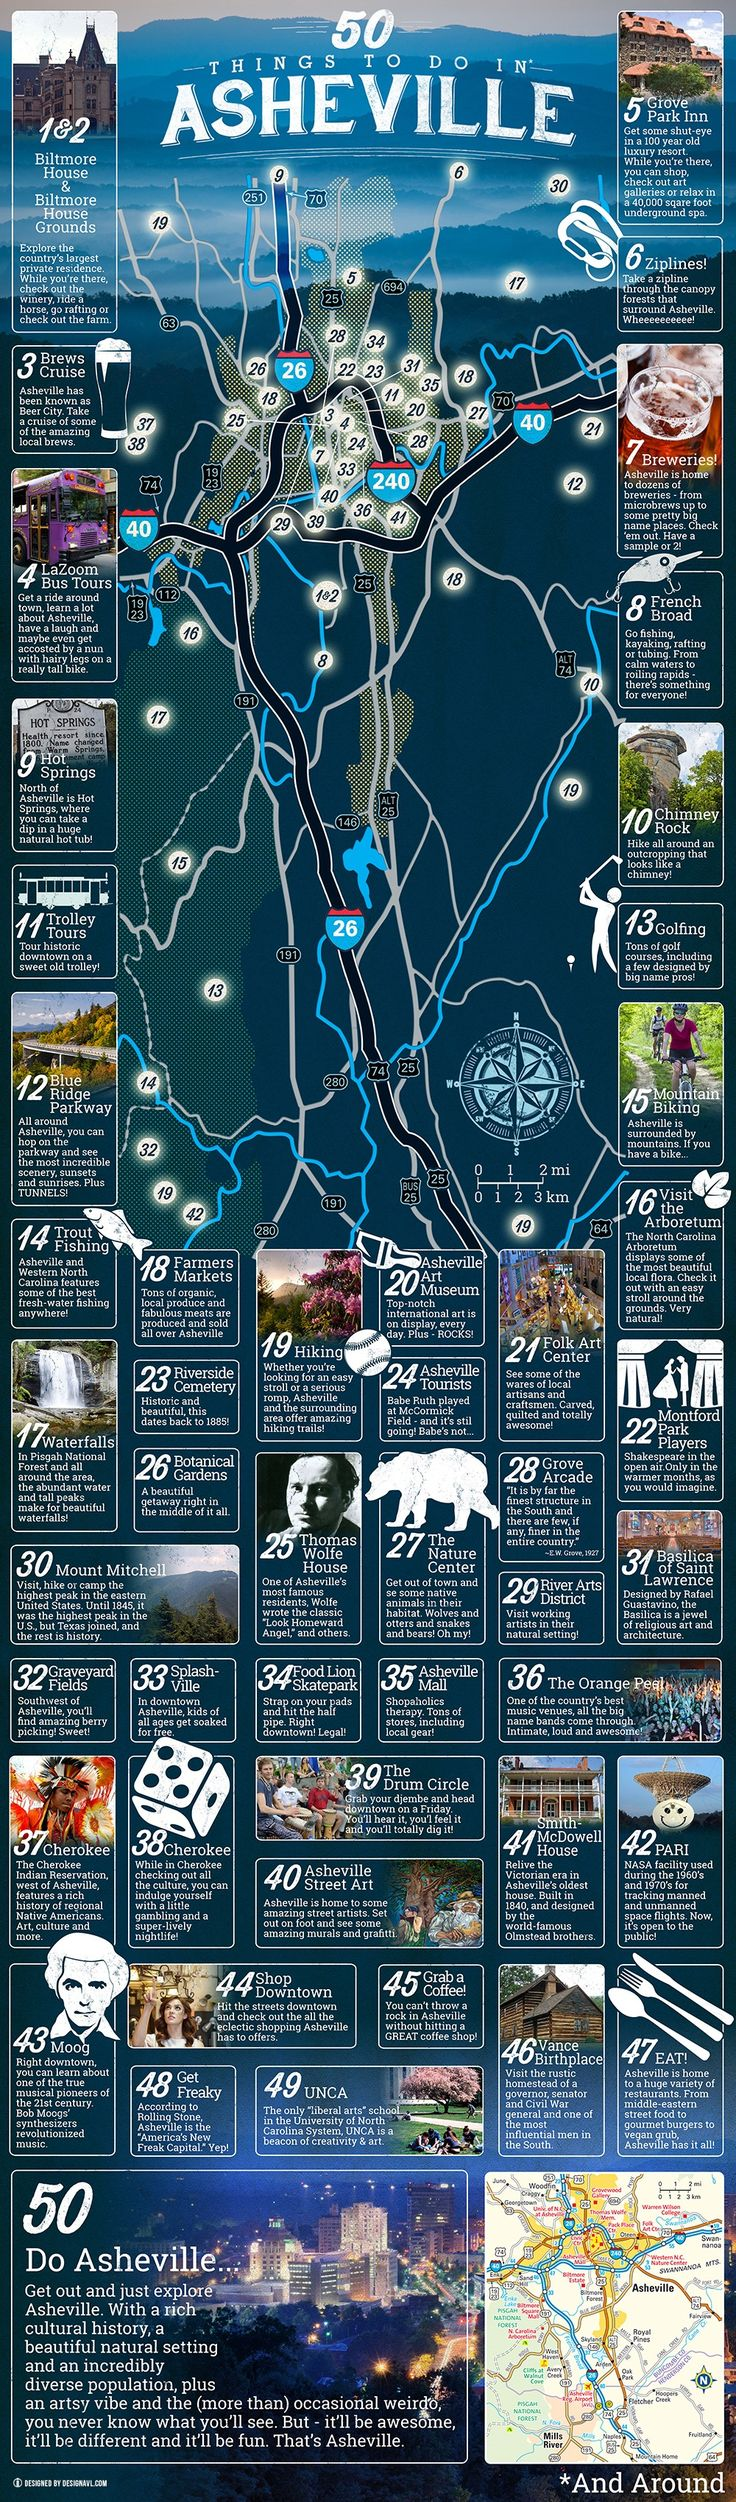 50 fun things to do in Asheville North Carolina. [infographic]